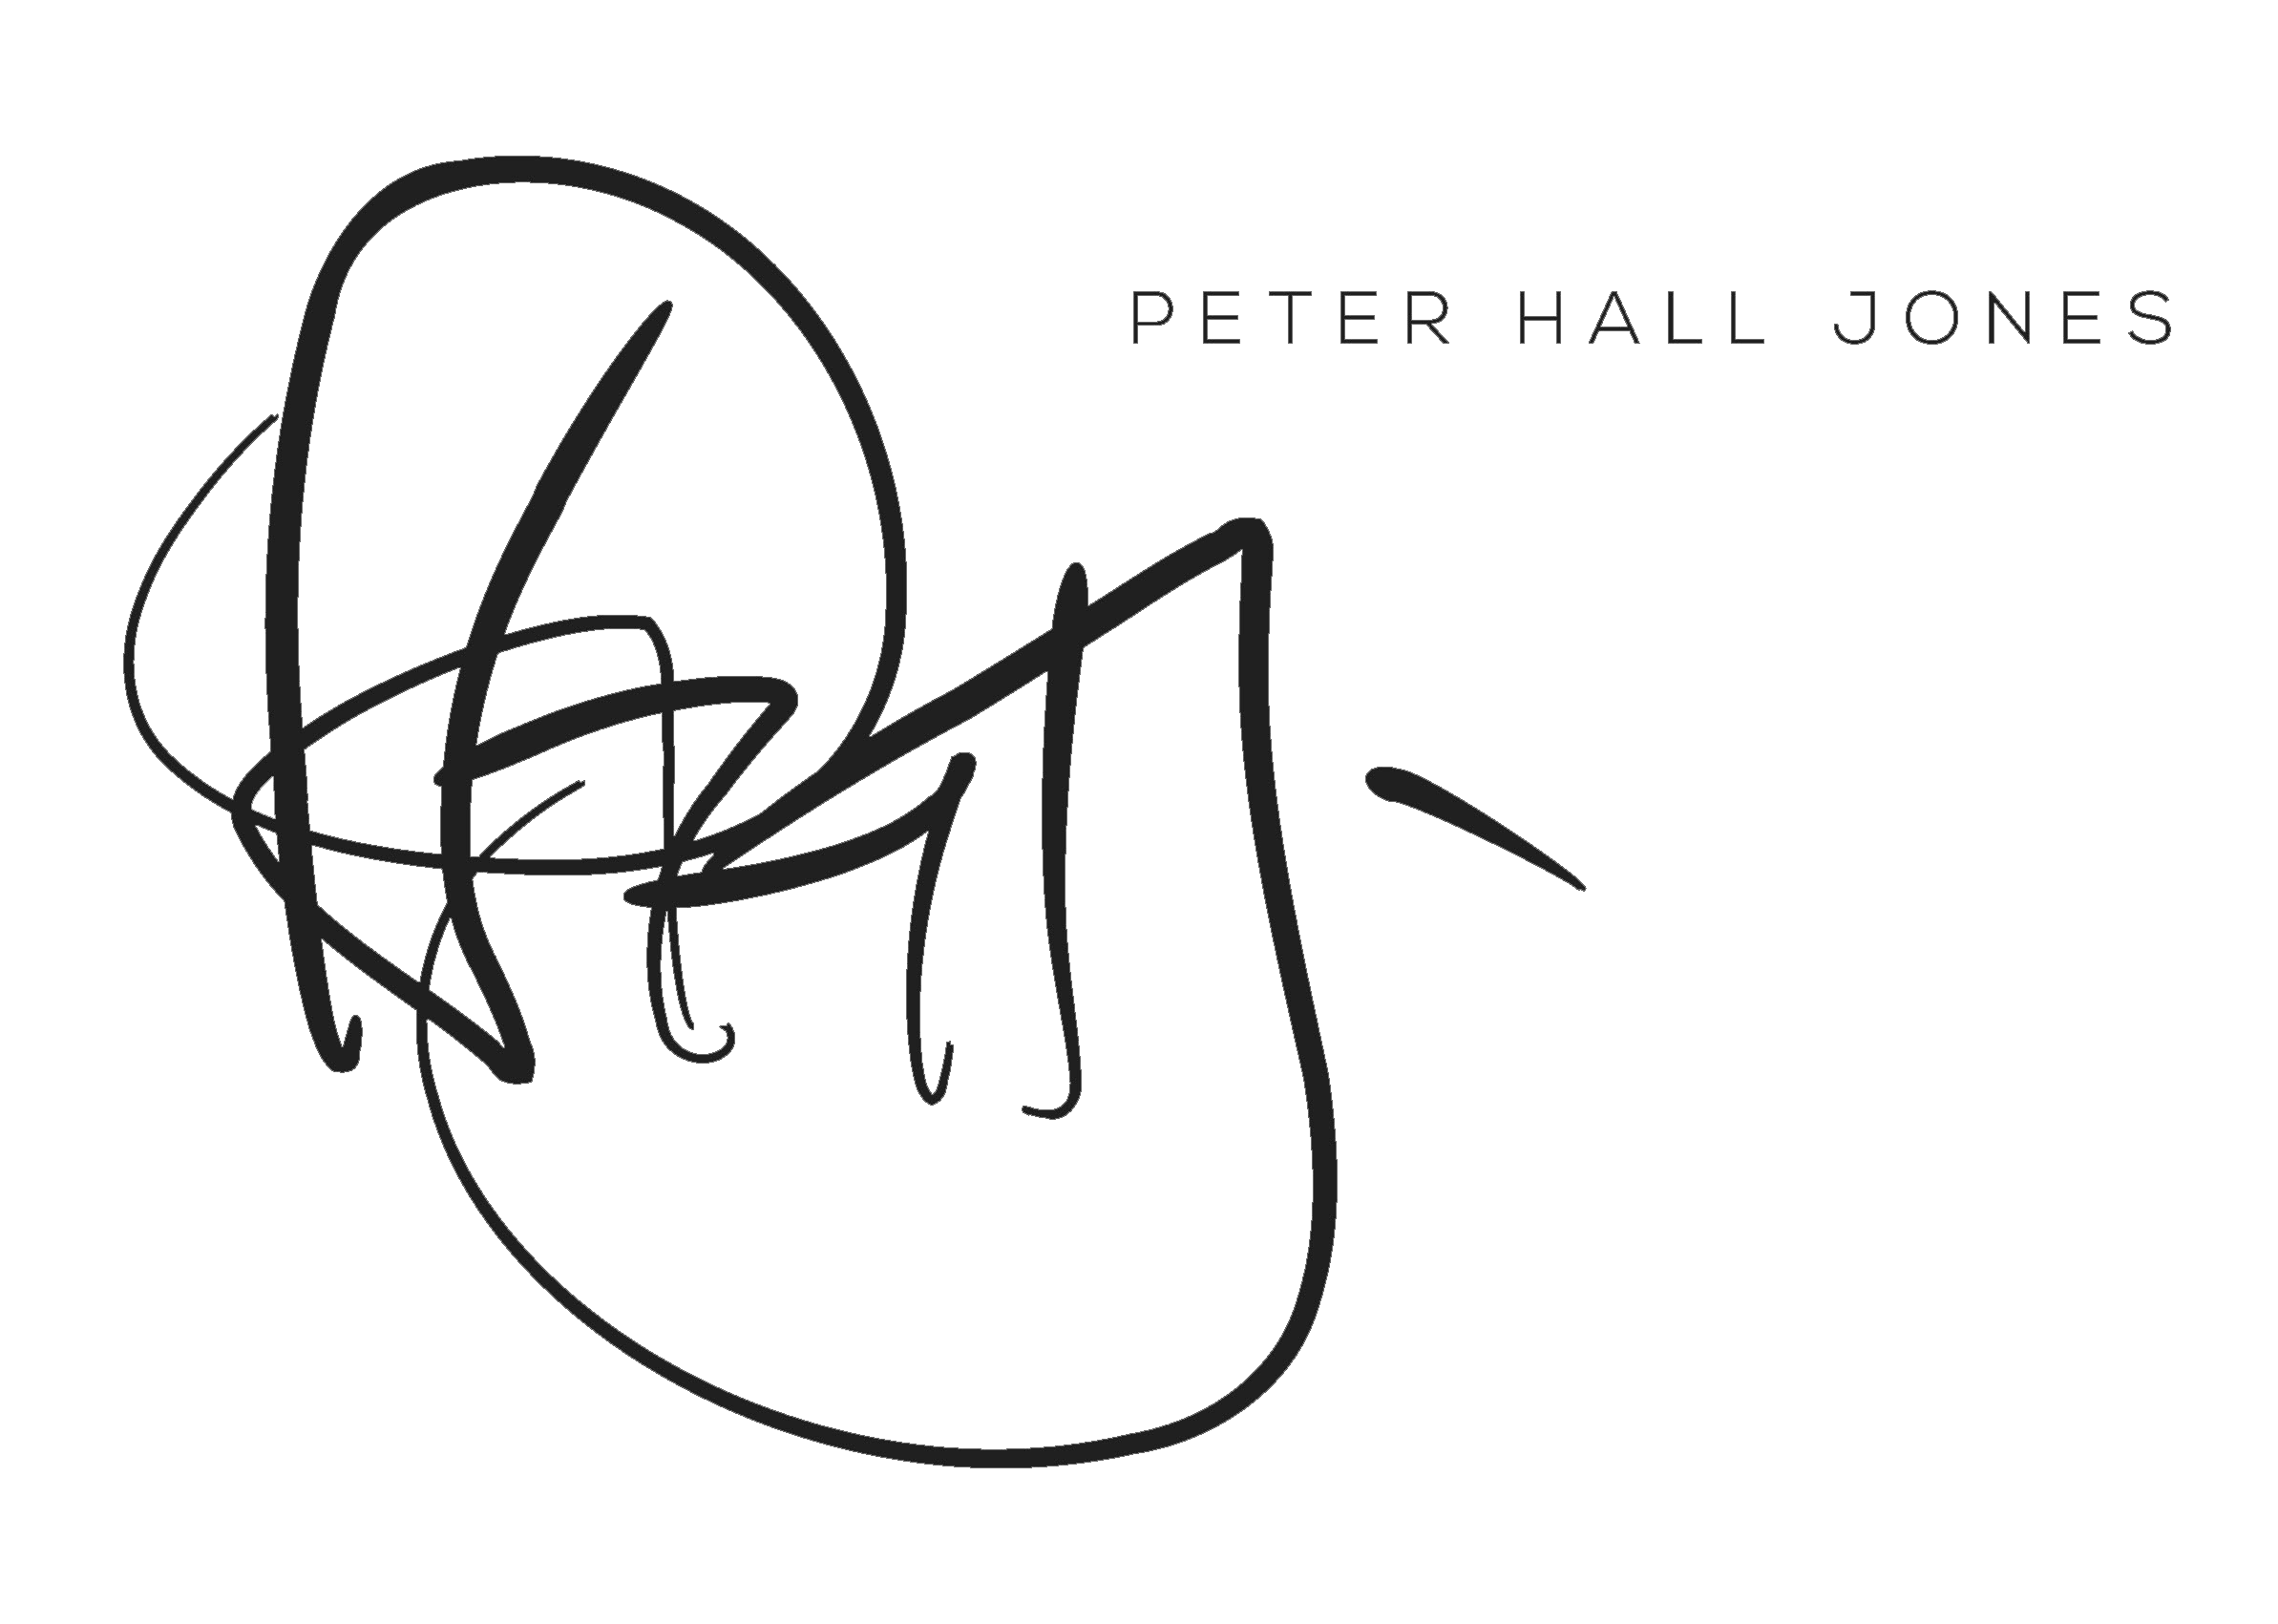 Peter Hall Jones